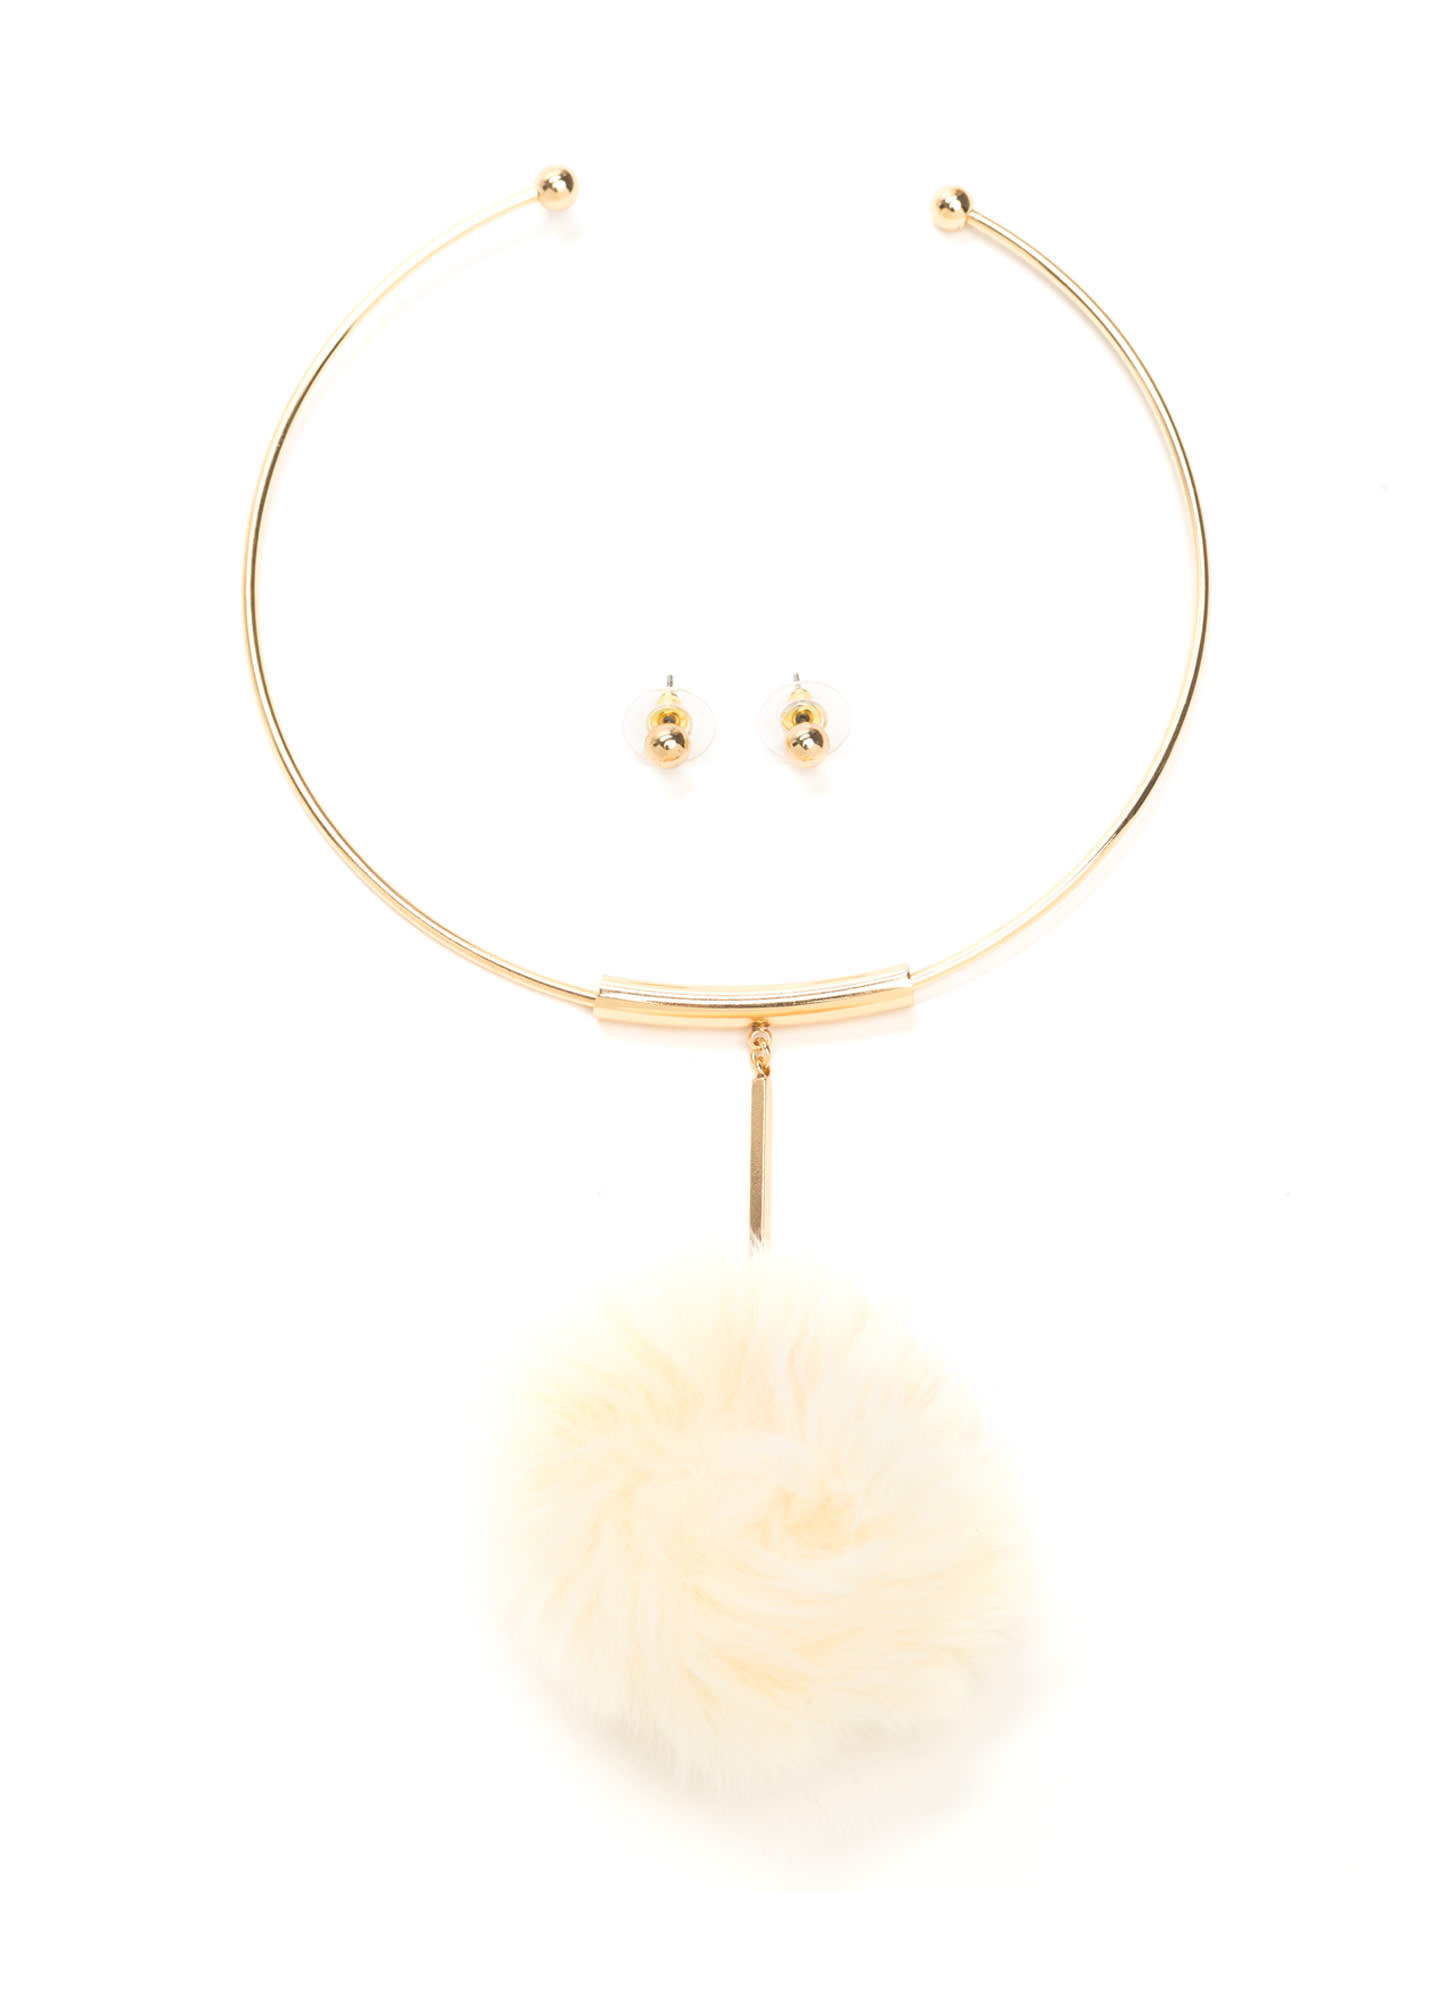 All Faux Fur It Pom-Pom Necklace Set IVORY